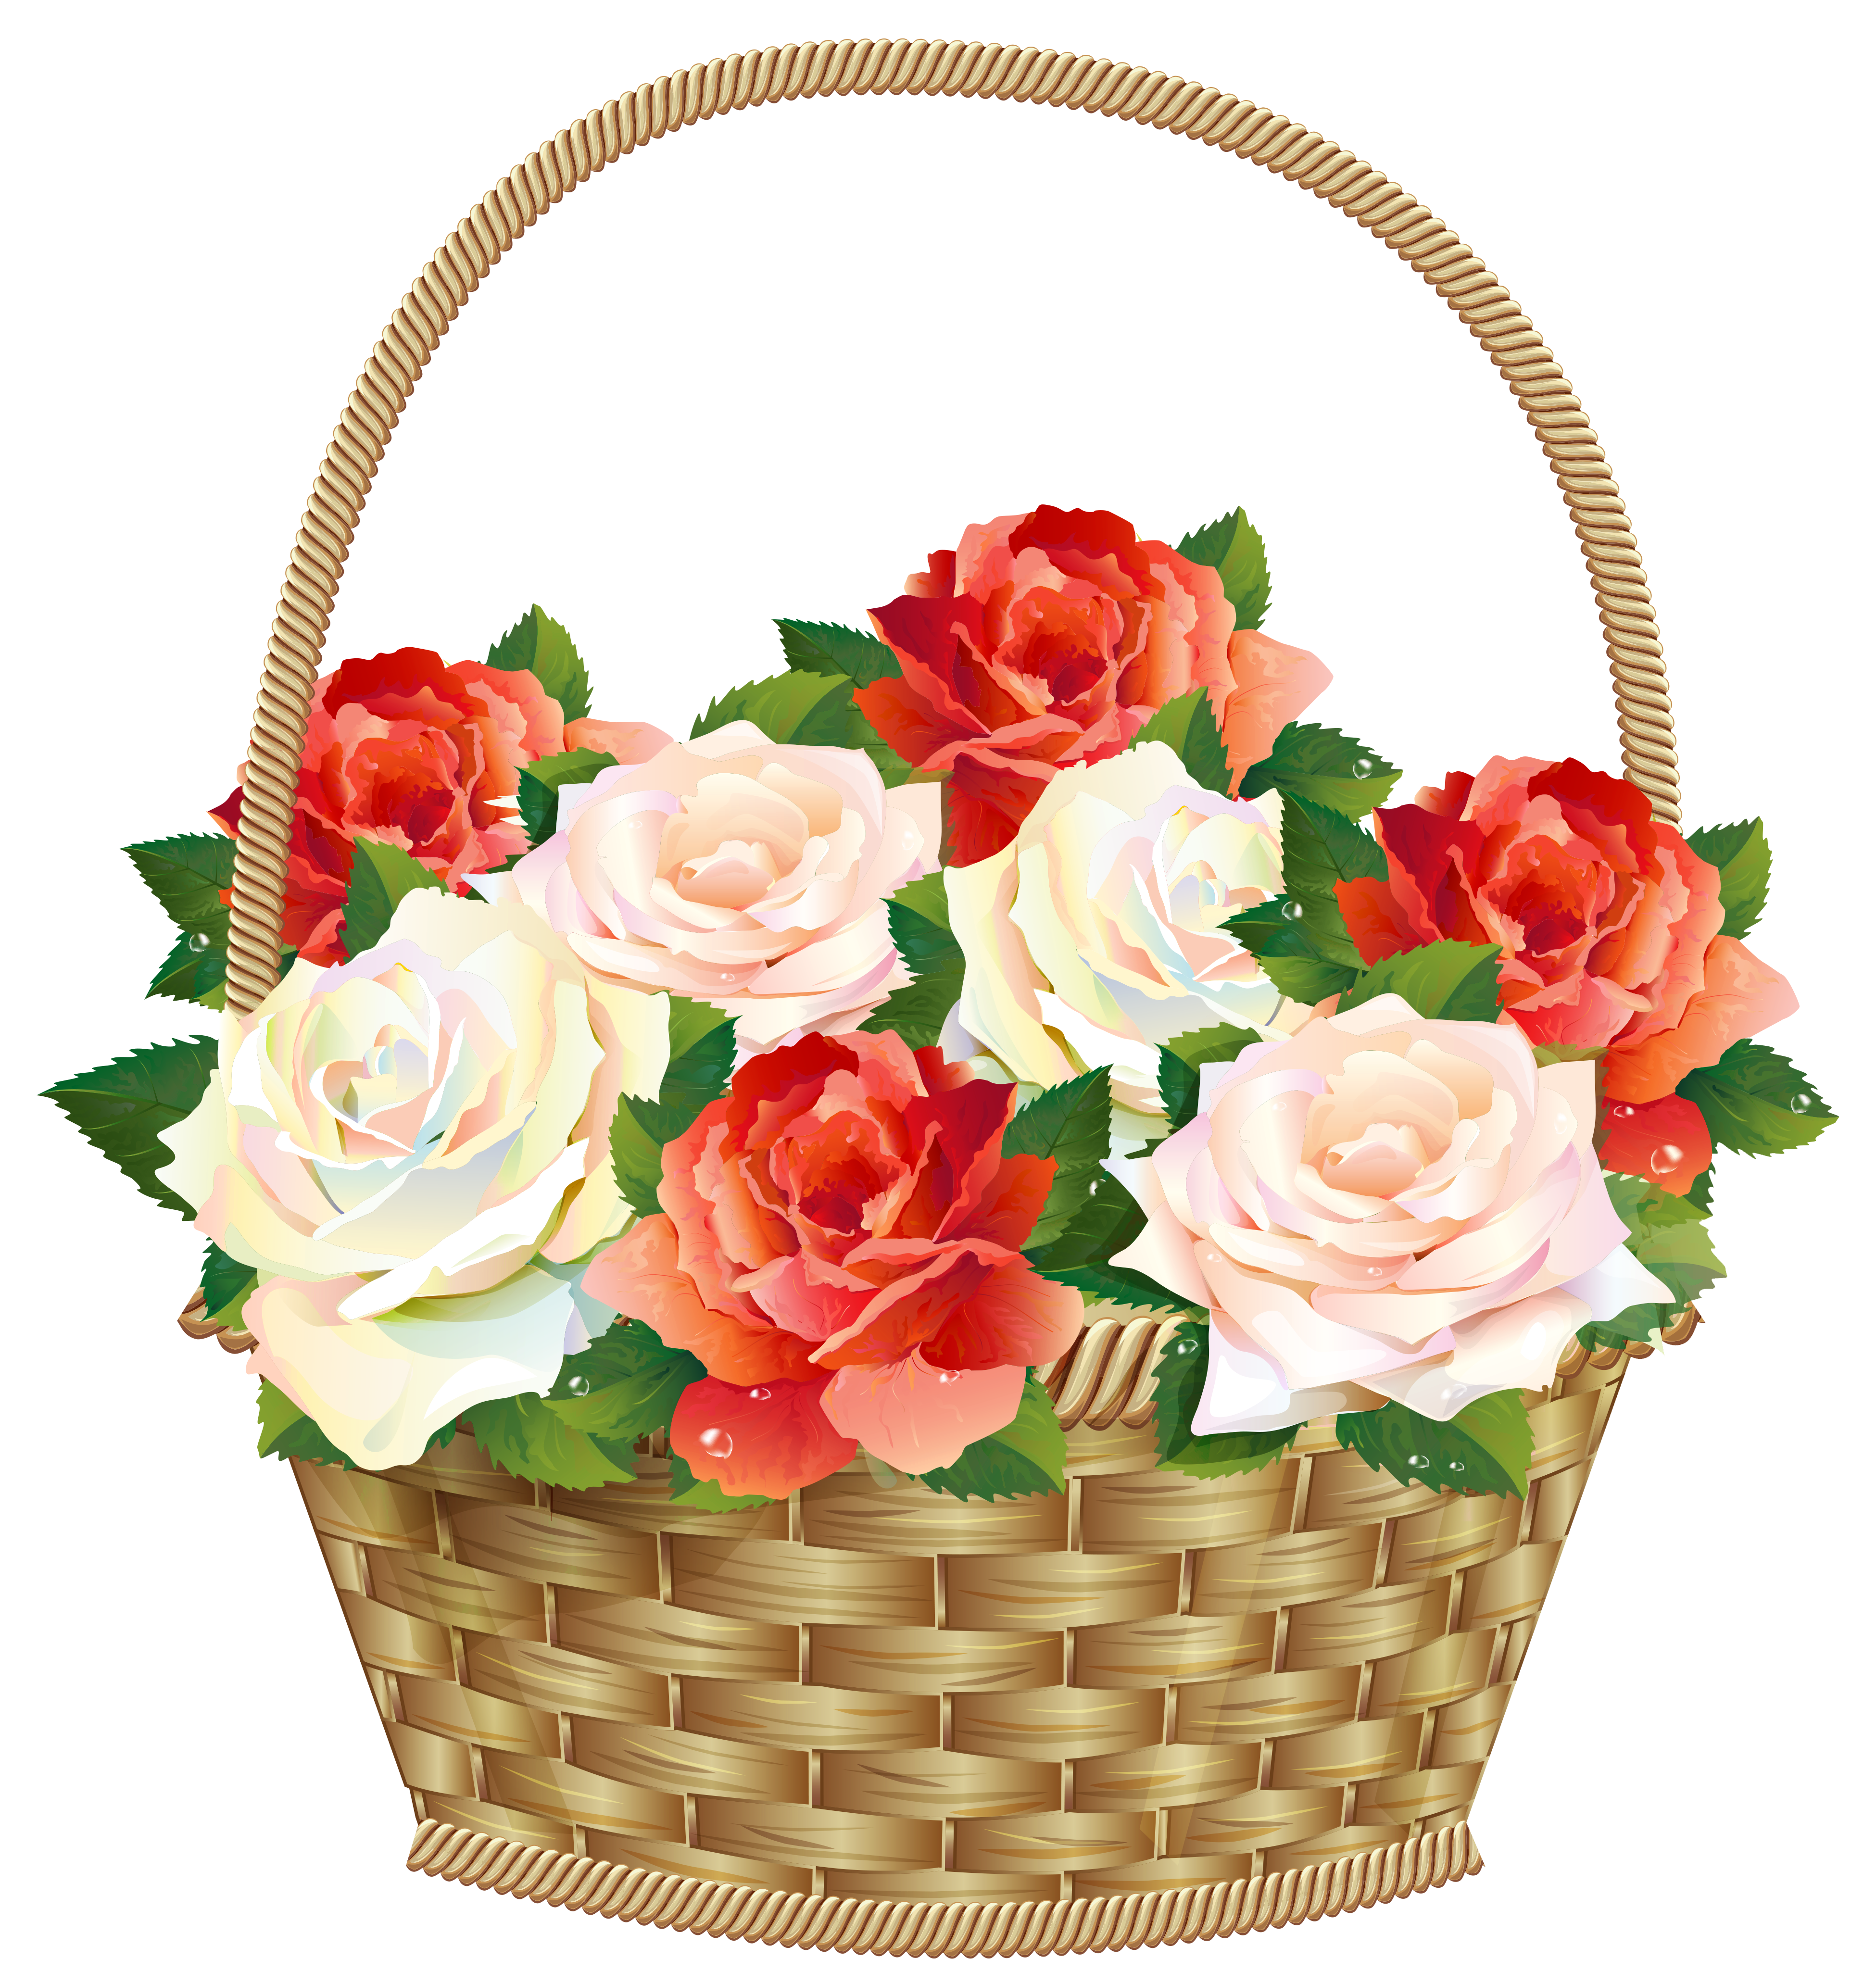 Basket Roses In Transparent Icon PNG File HD PNG Image